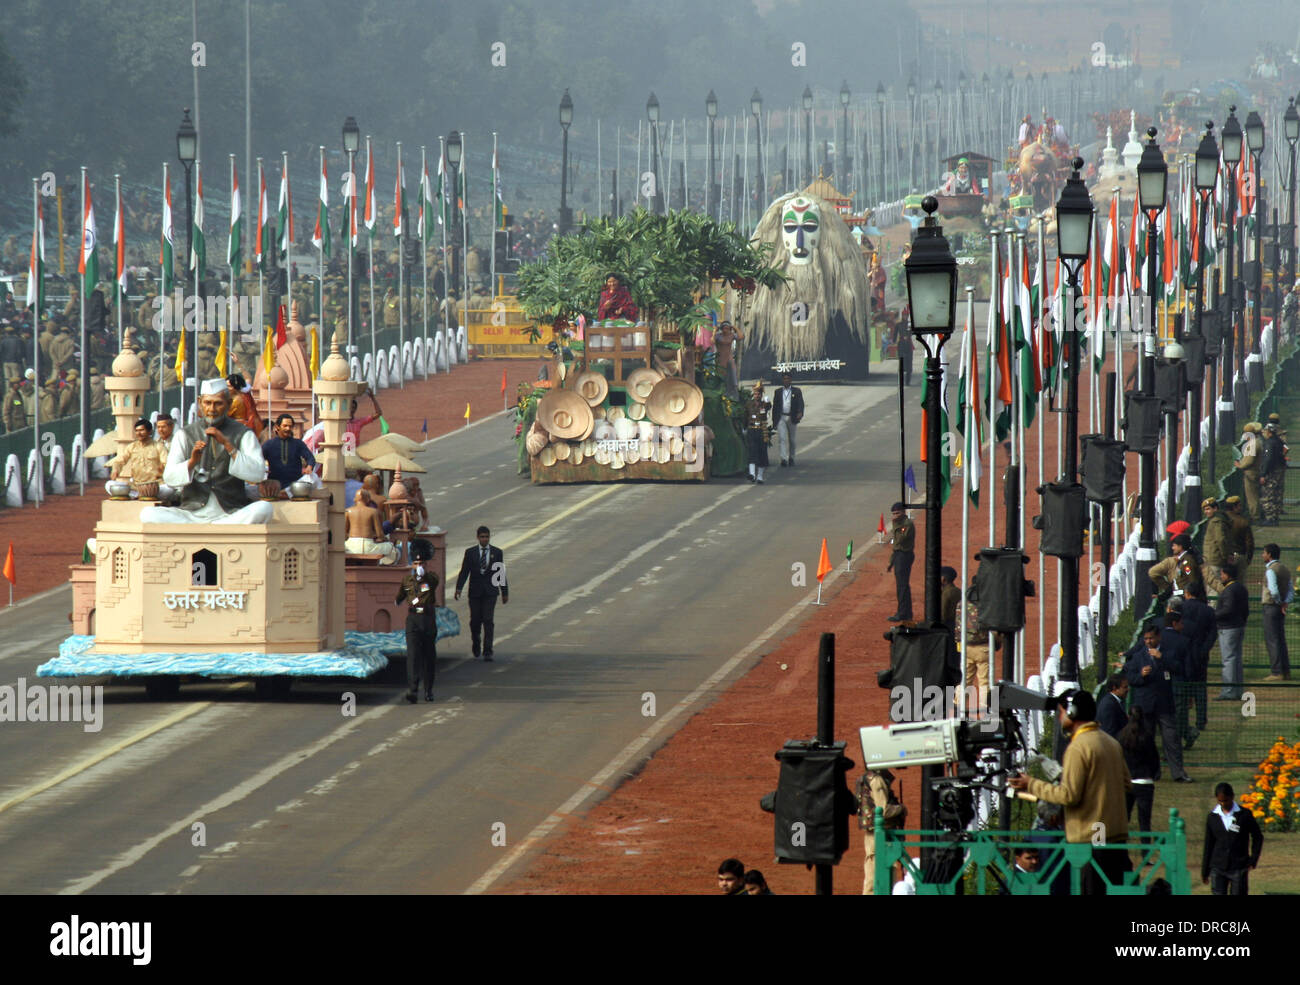 Republic Day India Parade High Resolution Stock Photography And Images Alamy